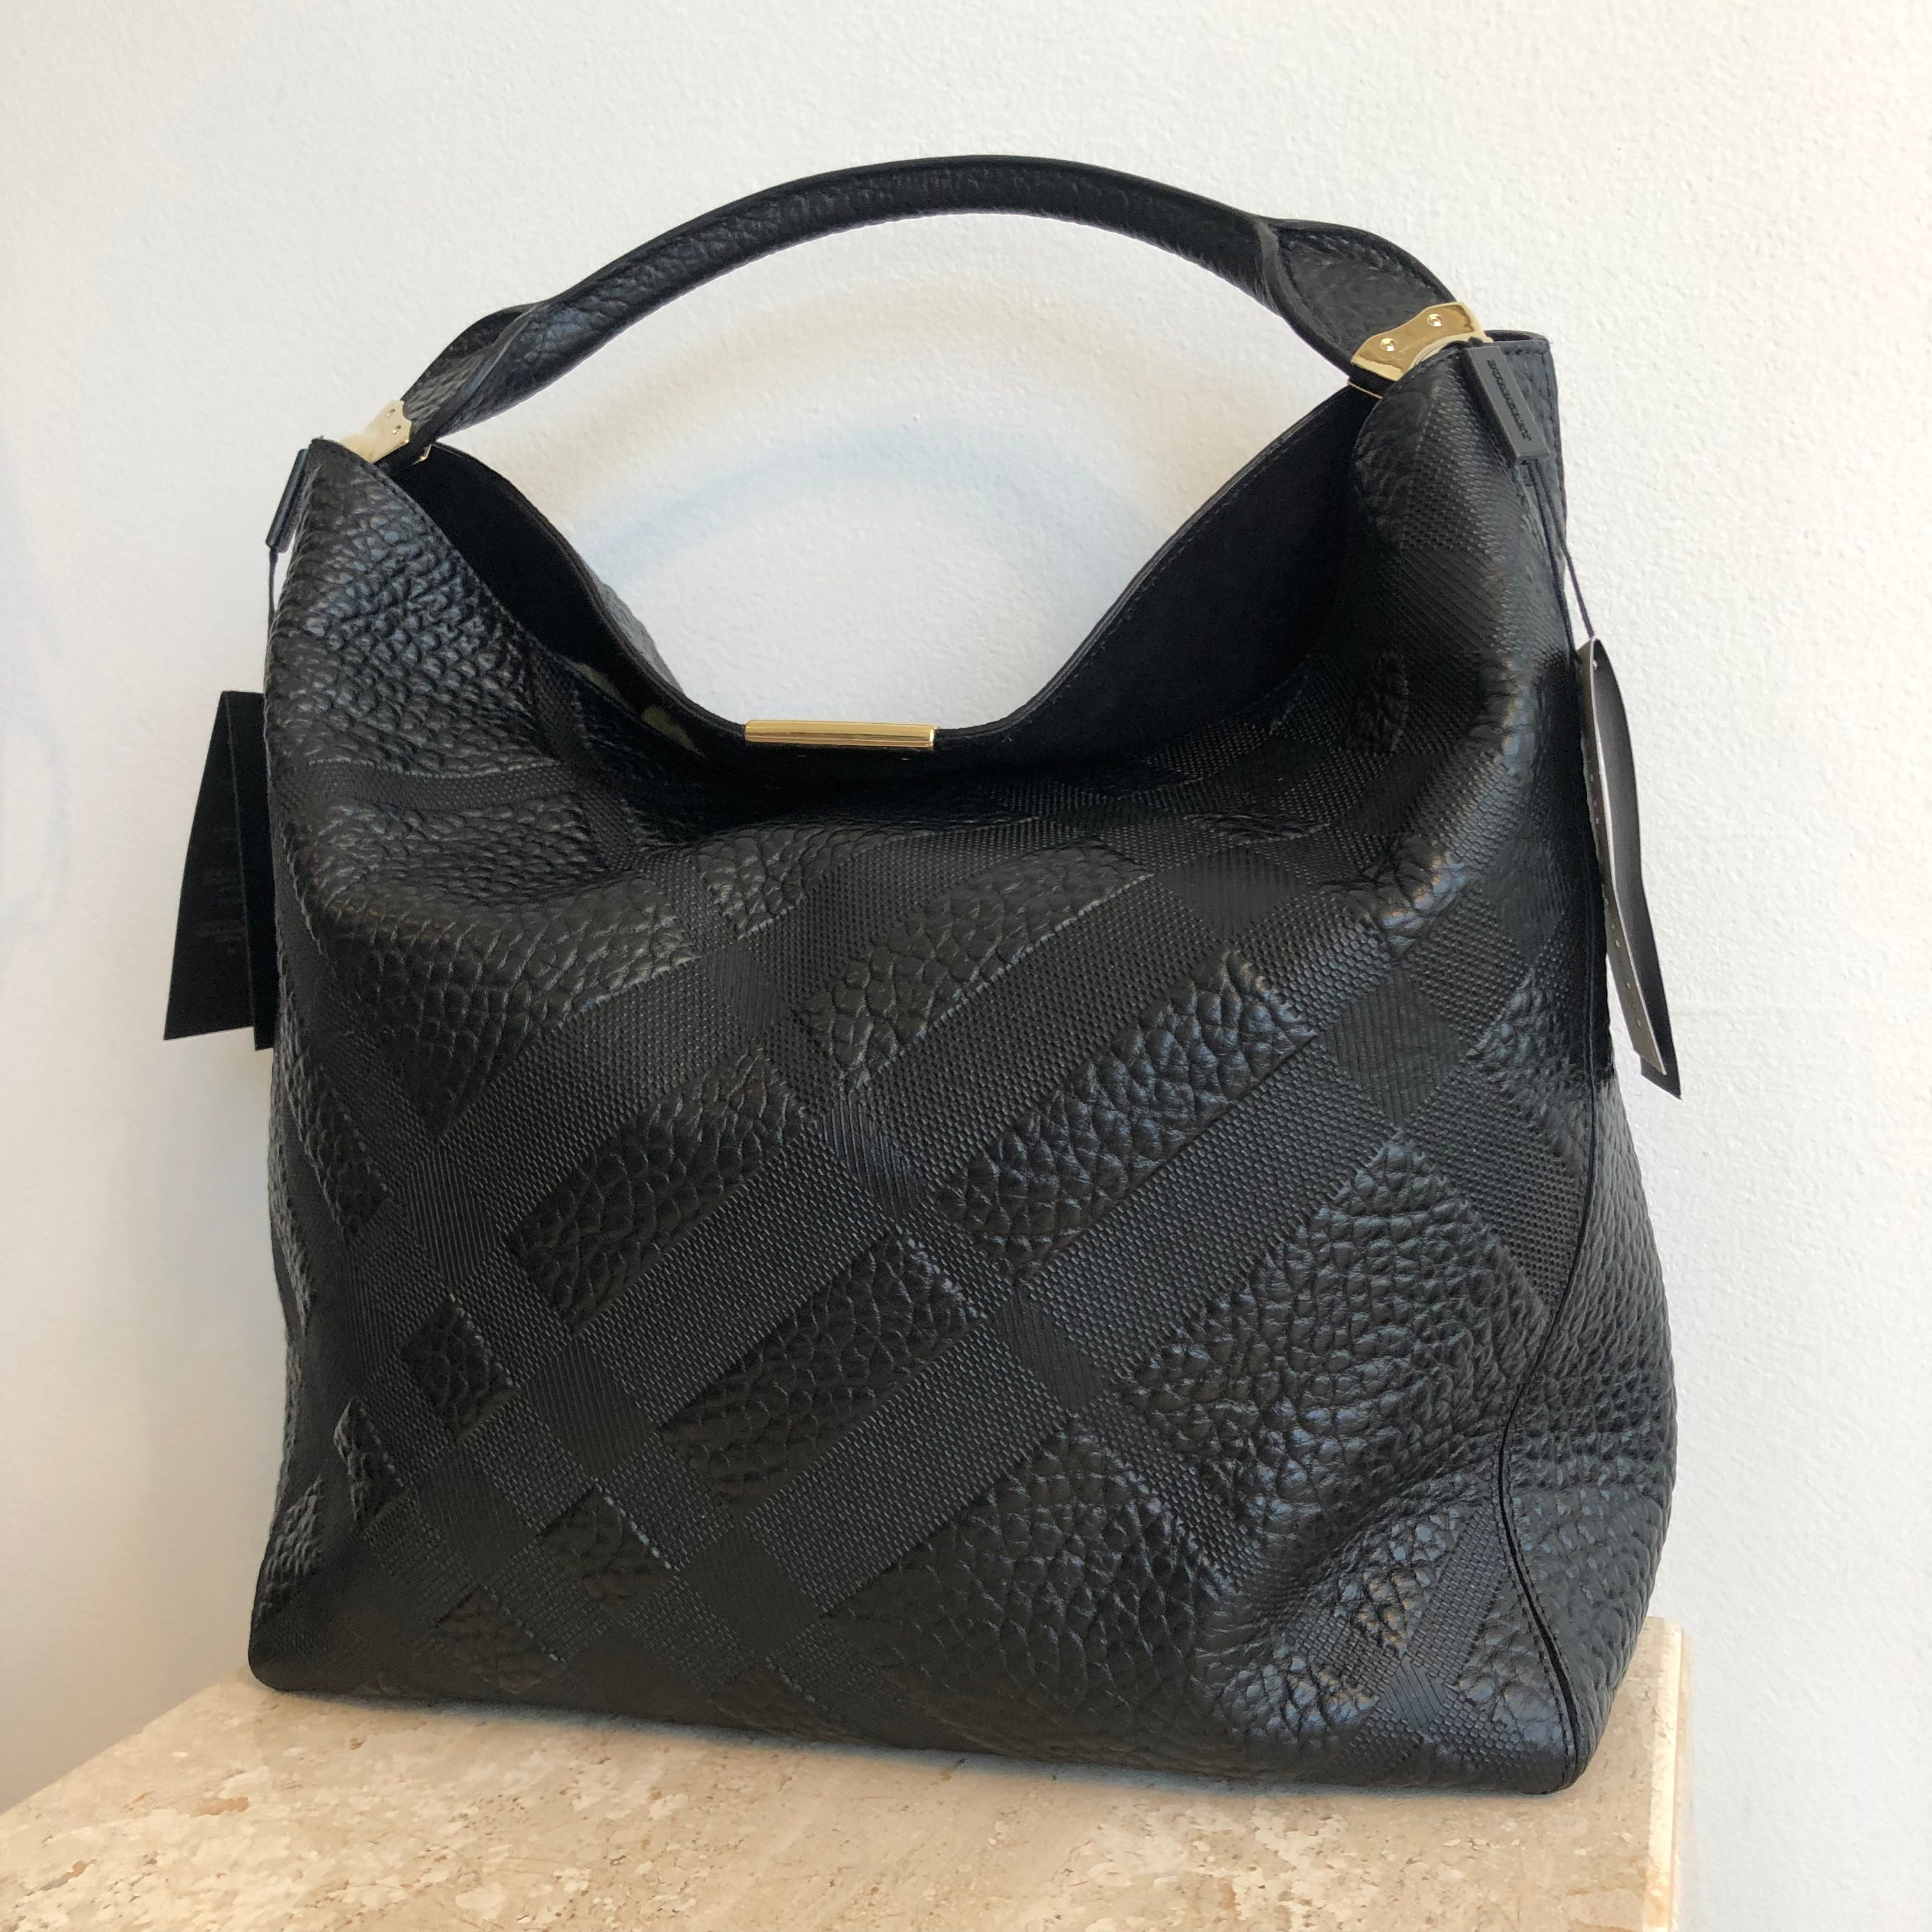 Authentic BURBERRY Medium Lindburn Embossed Check Leather Hobo